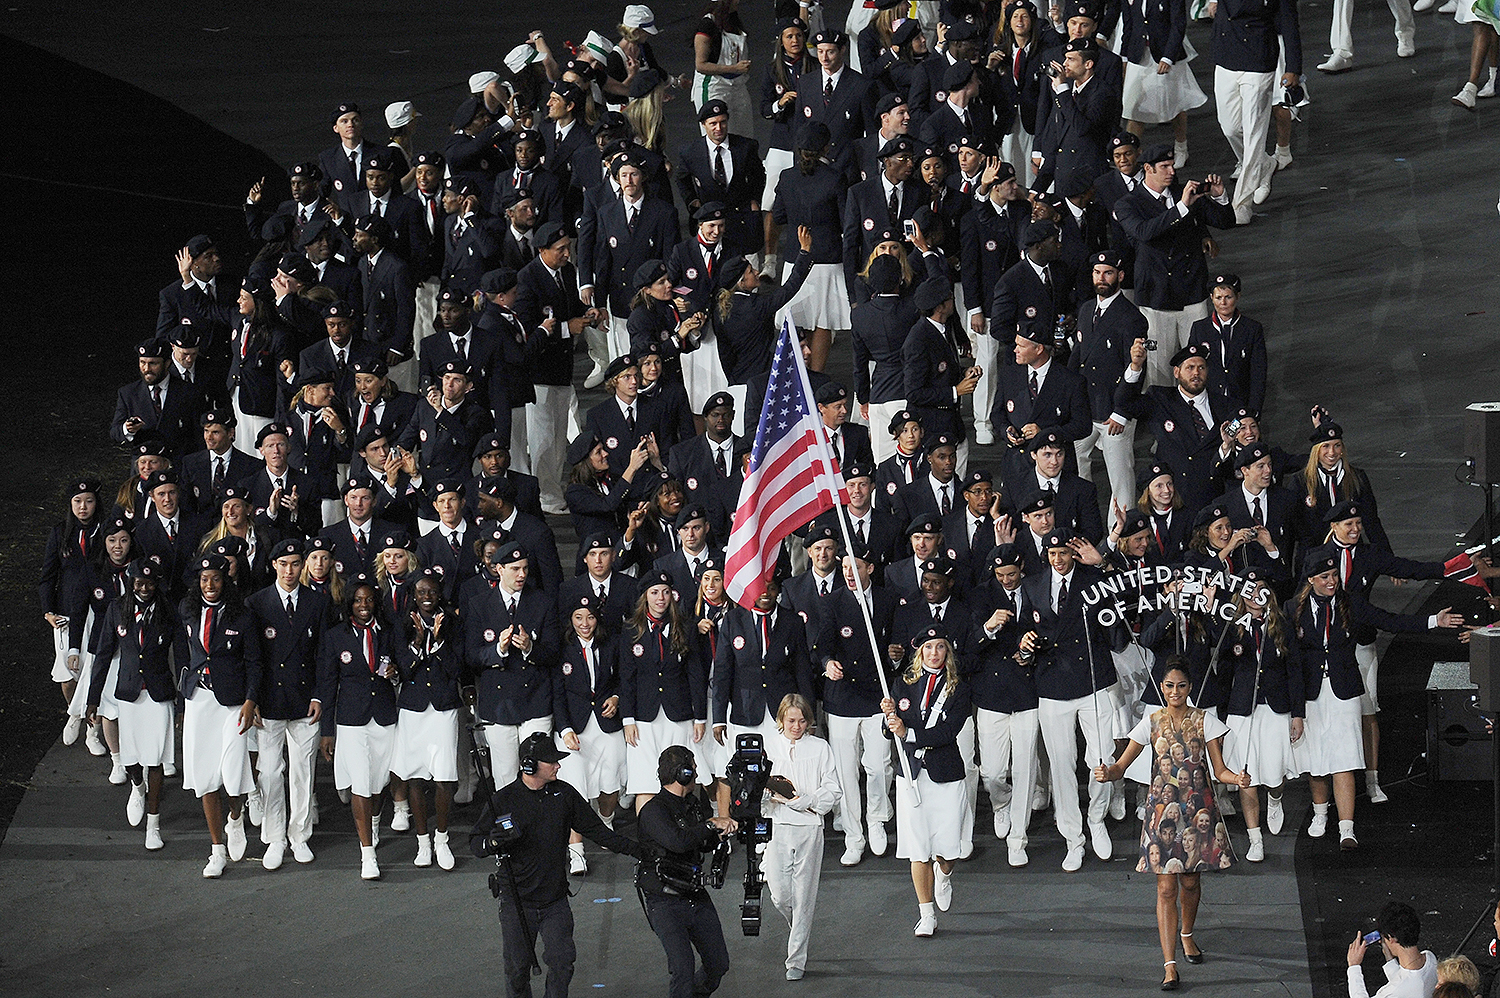 USA Olympic Uniforms Through the Years